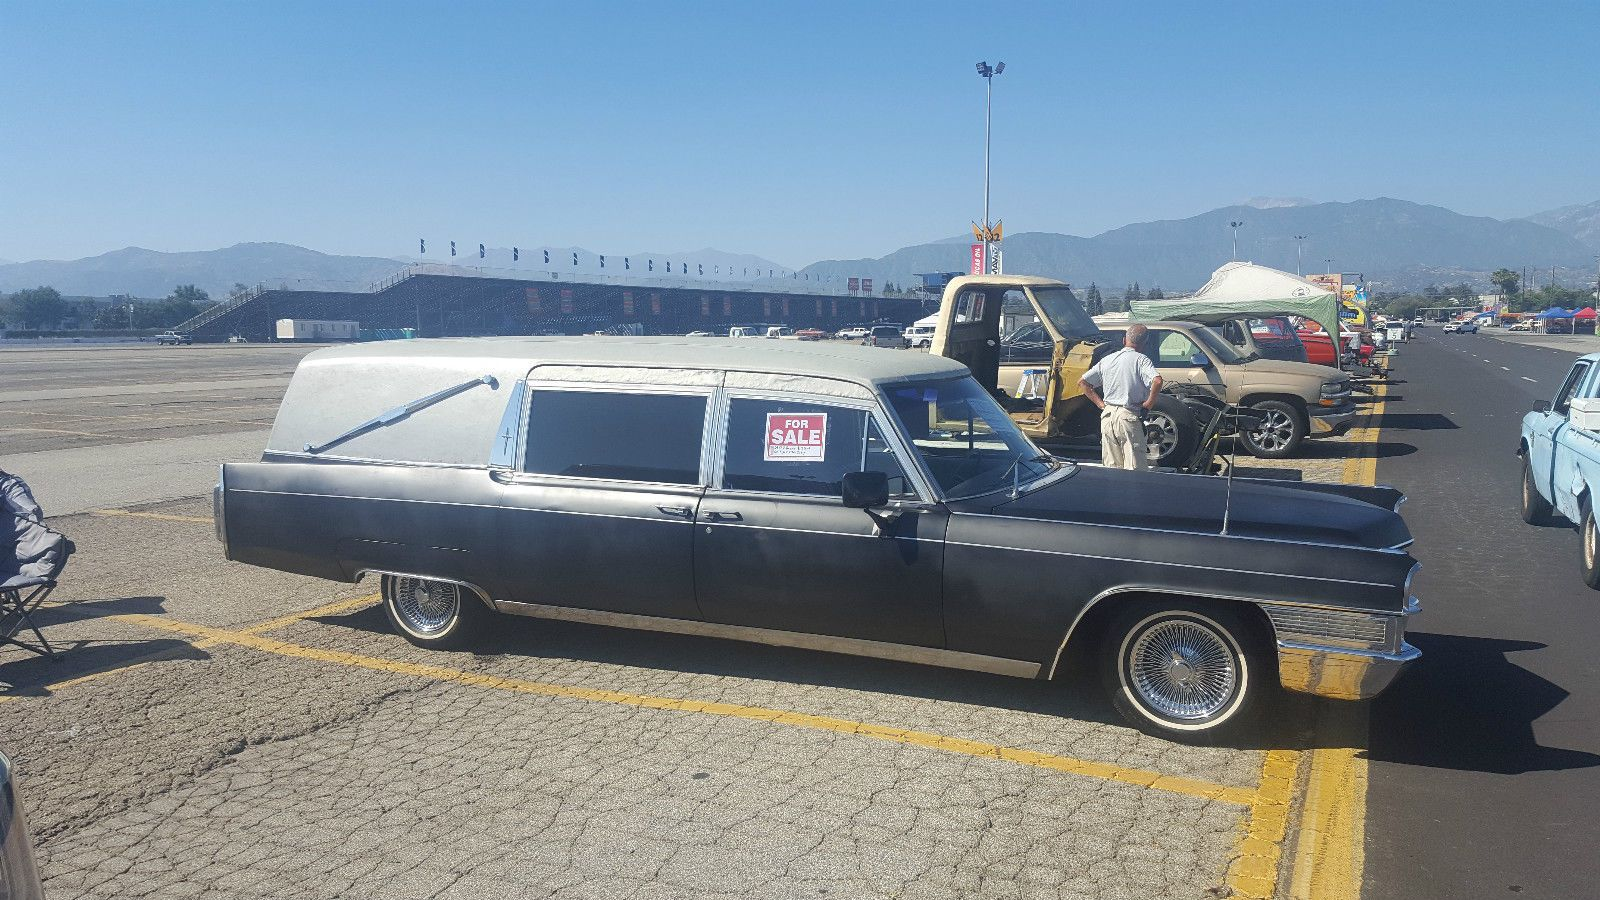 1965 cadillac miller meteor herase for sale